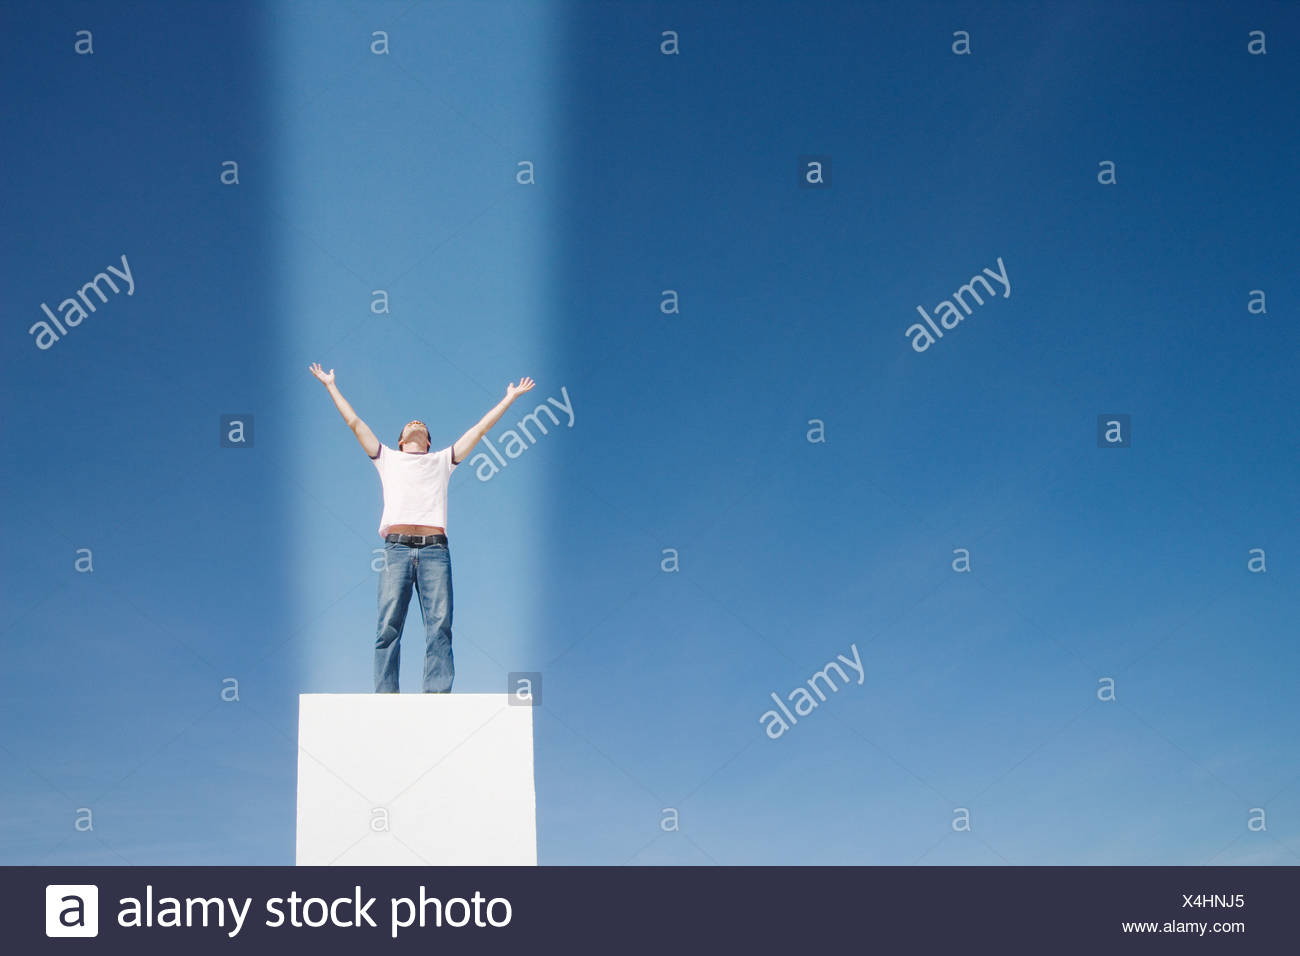 Man with a beam of light shining straight onto him - Stock Image